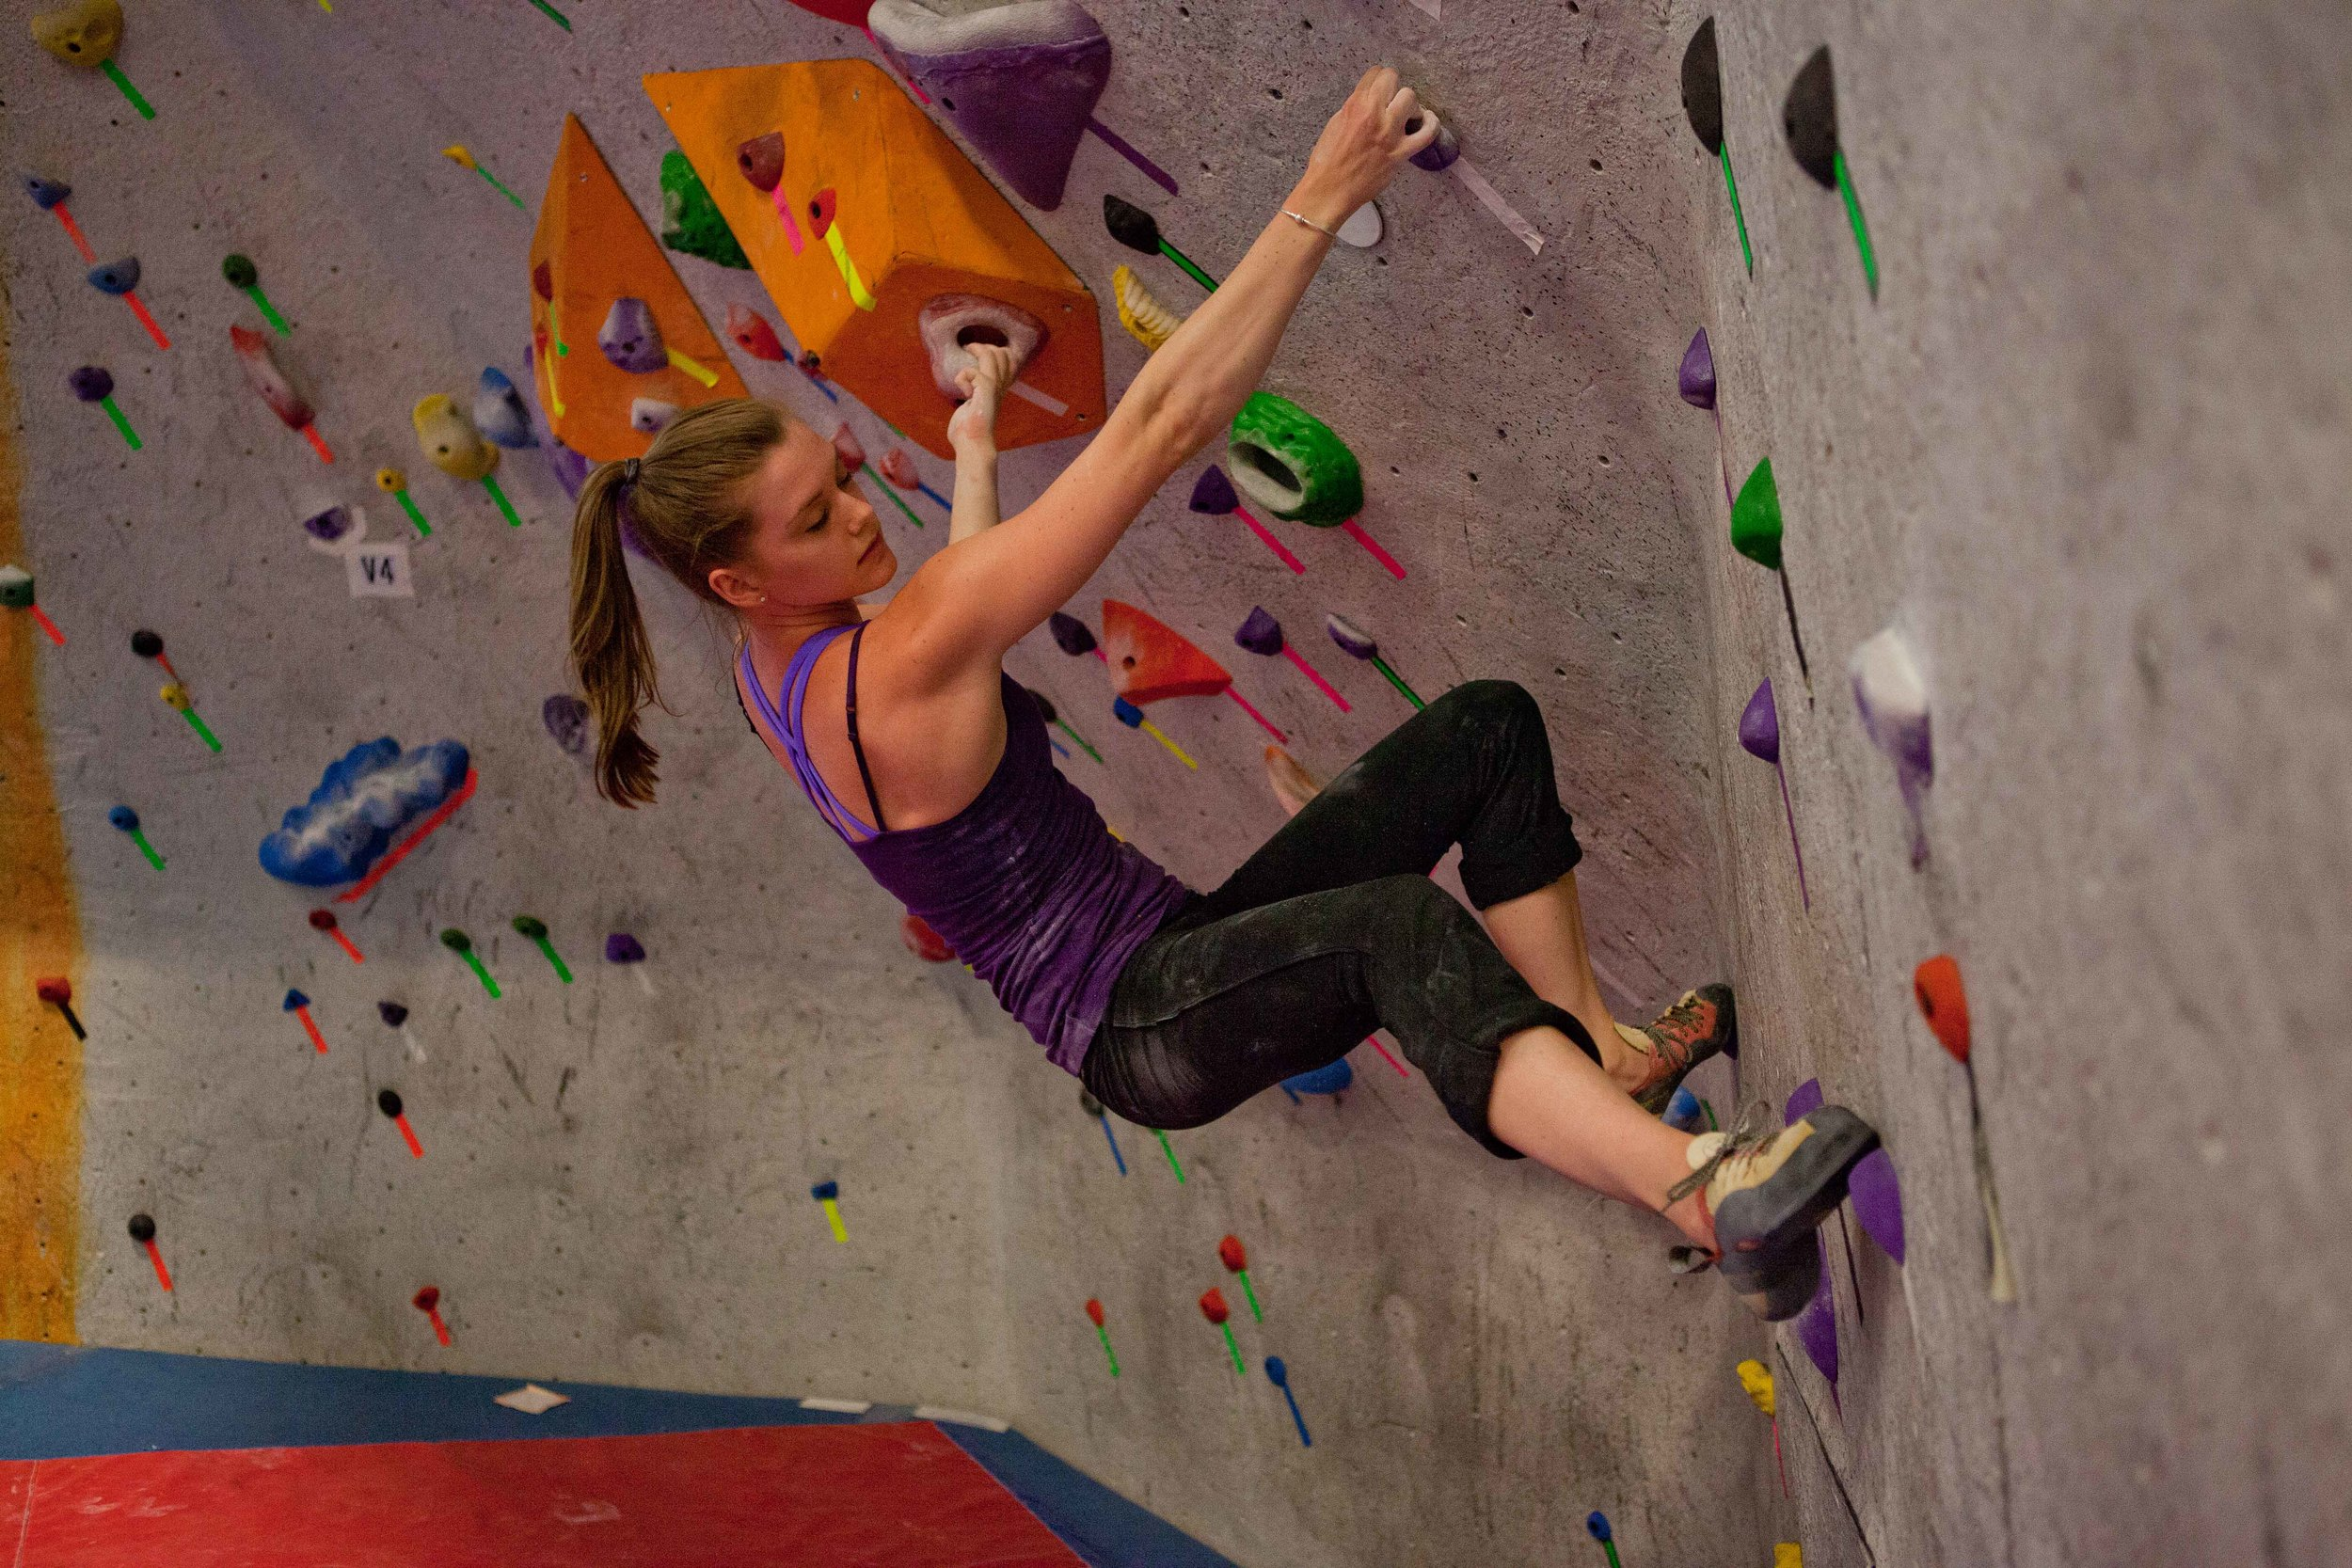 2013_08_11 Andrea climbing photos-307-37.jpg